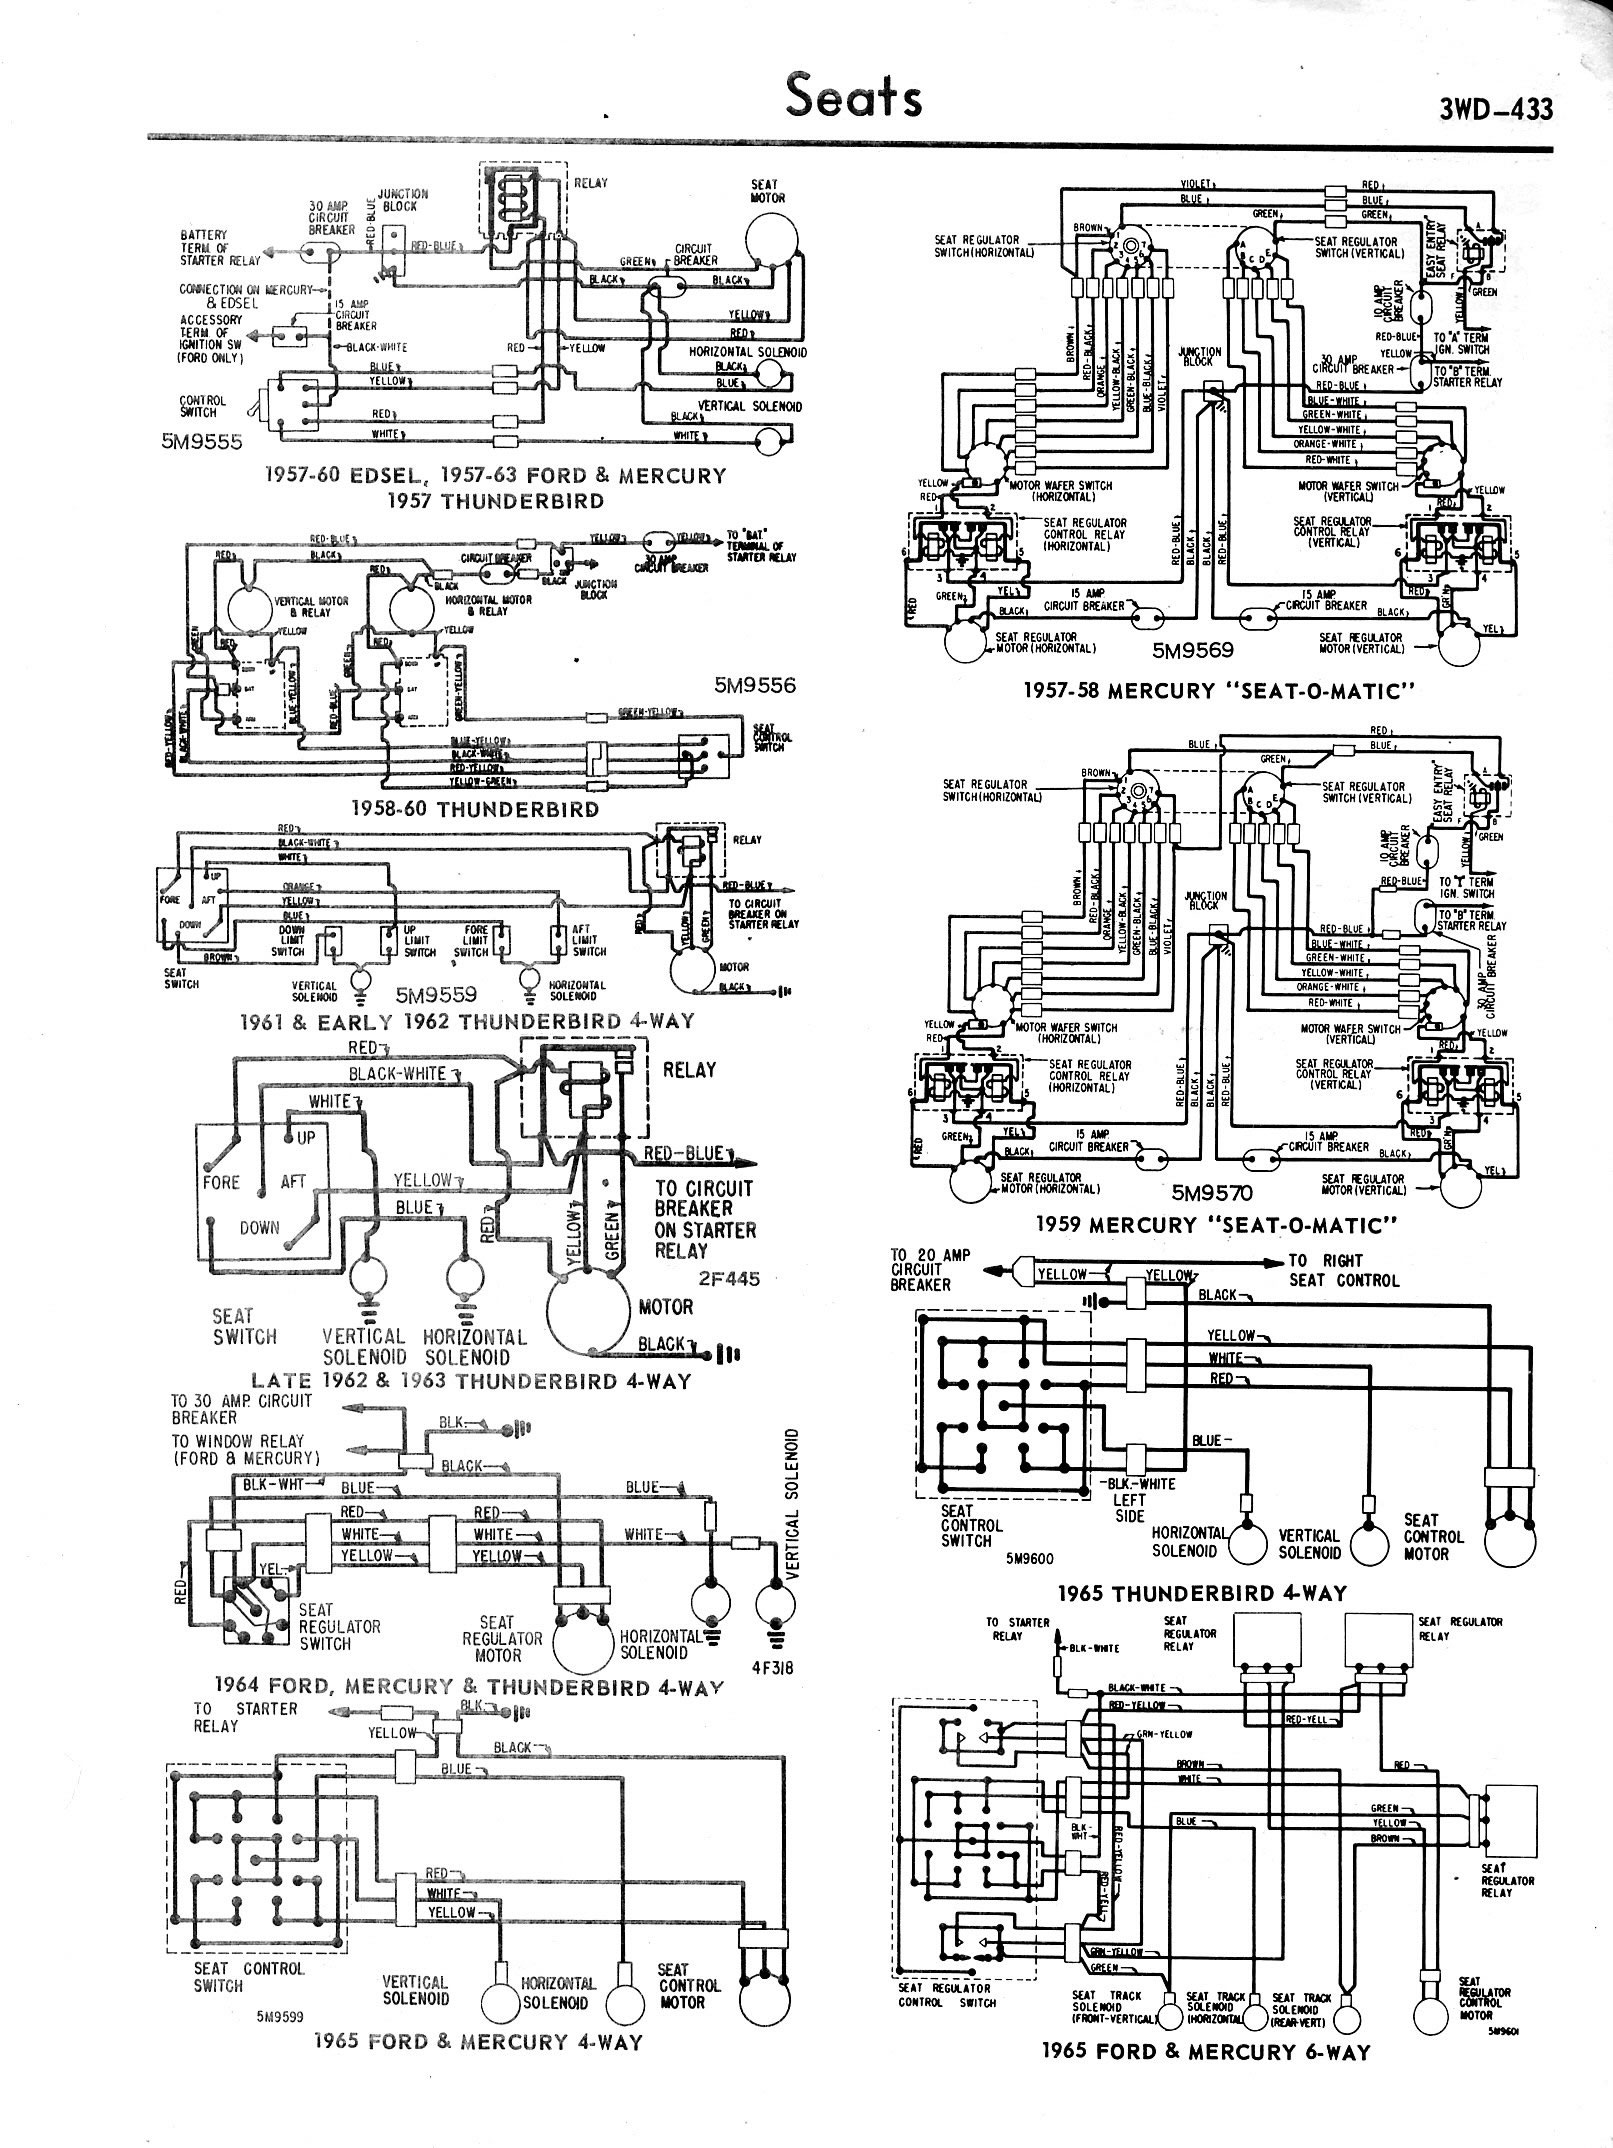 3WD 433_jpg ford diagrams 84 Ford Thunderbird Wiring Diagram at gsmx.co